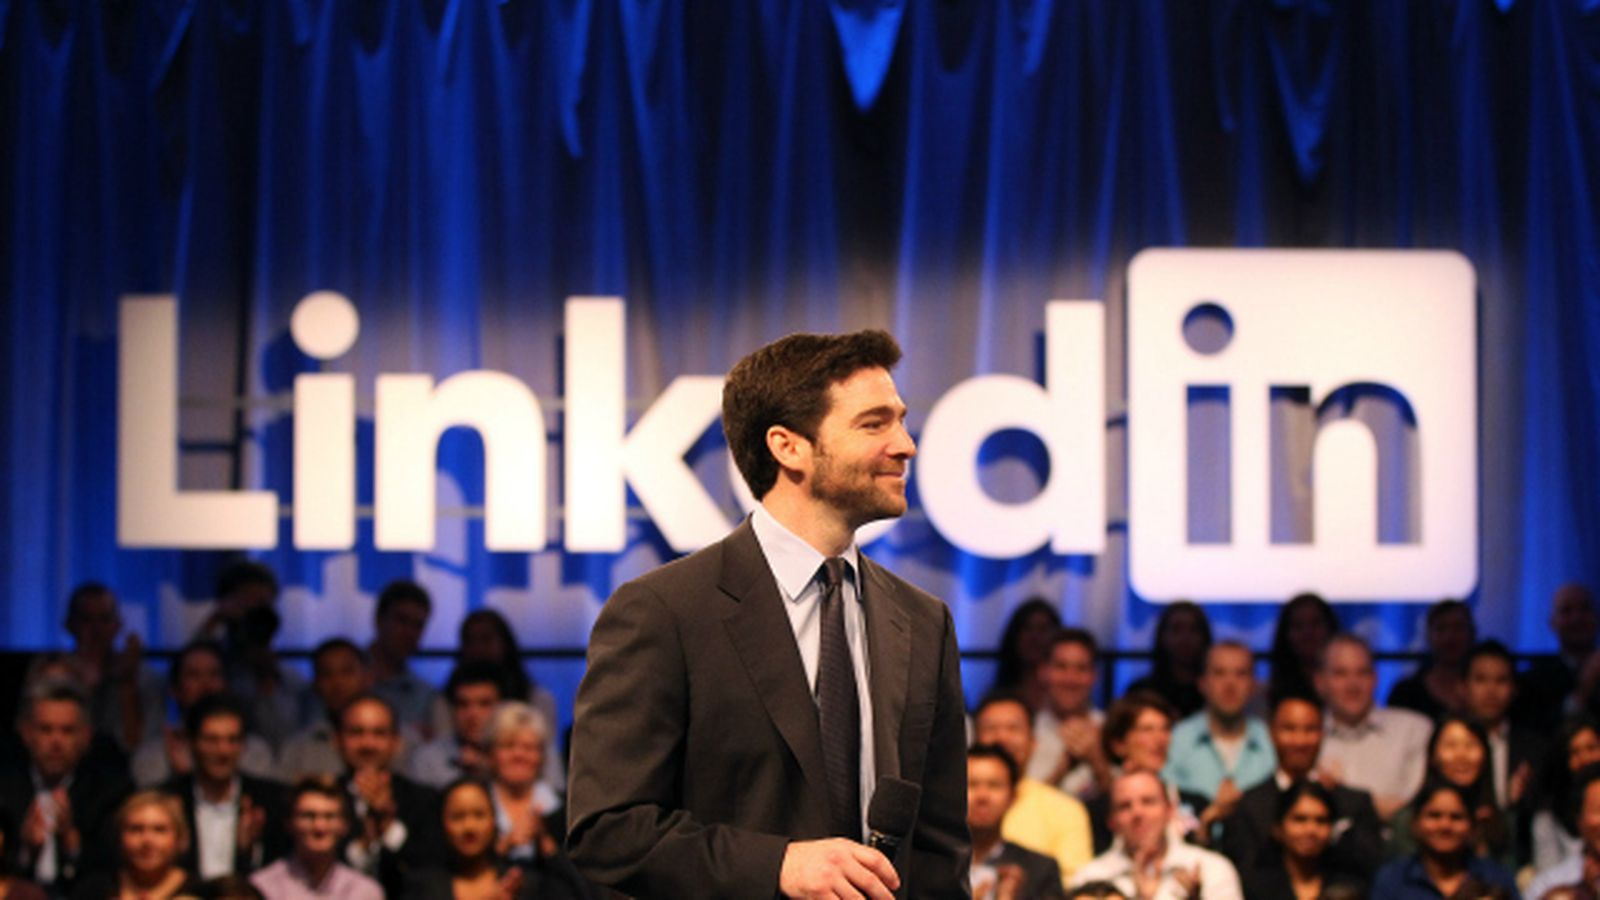 Here are three scary reasons why LinkedIn sold to Microsoft for $26B http://ift.tt/YV9WJO